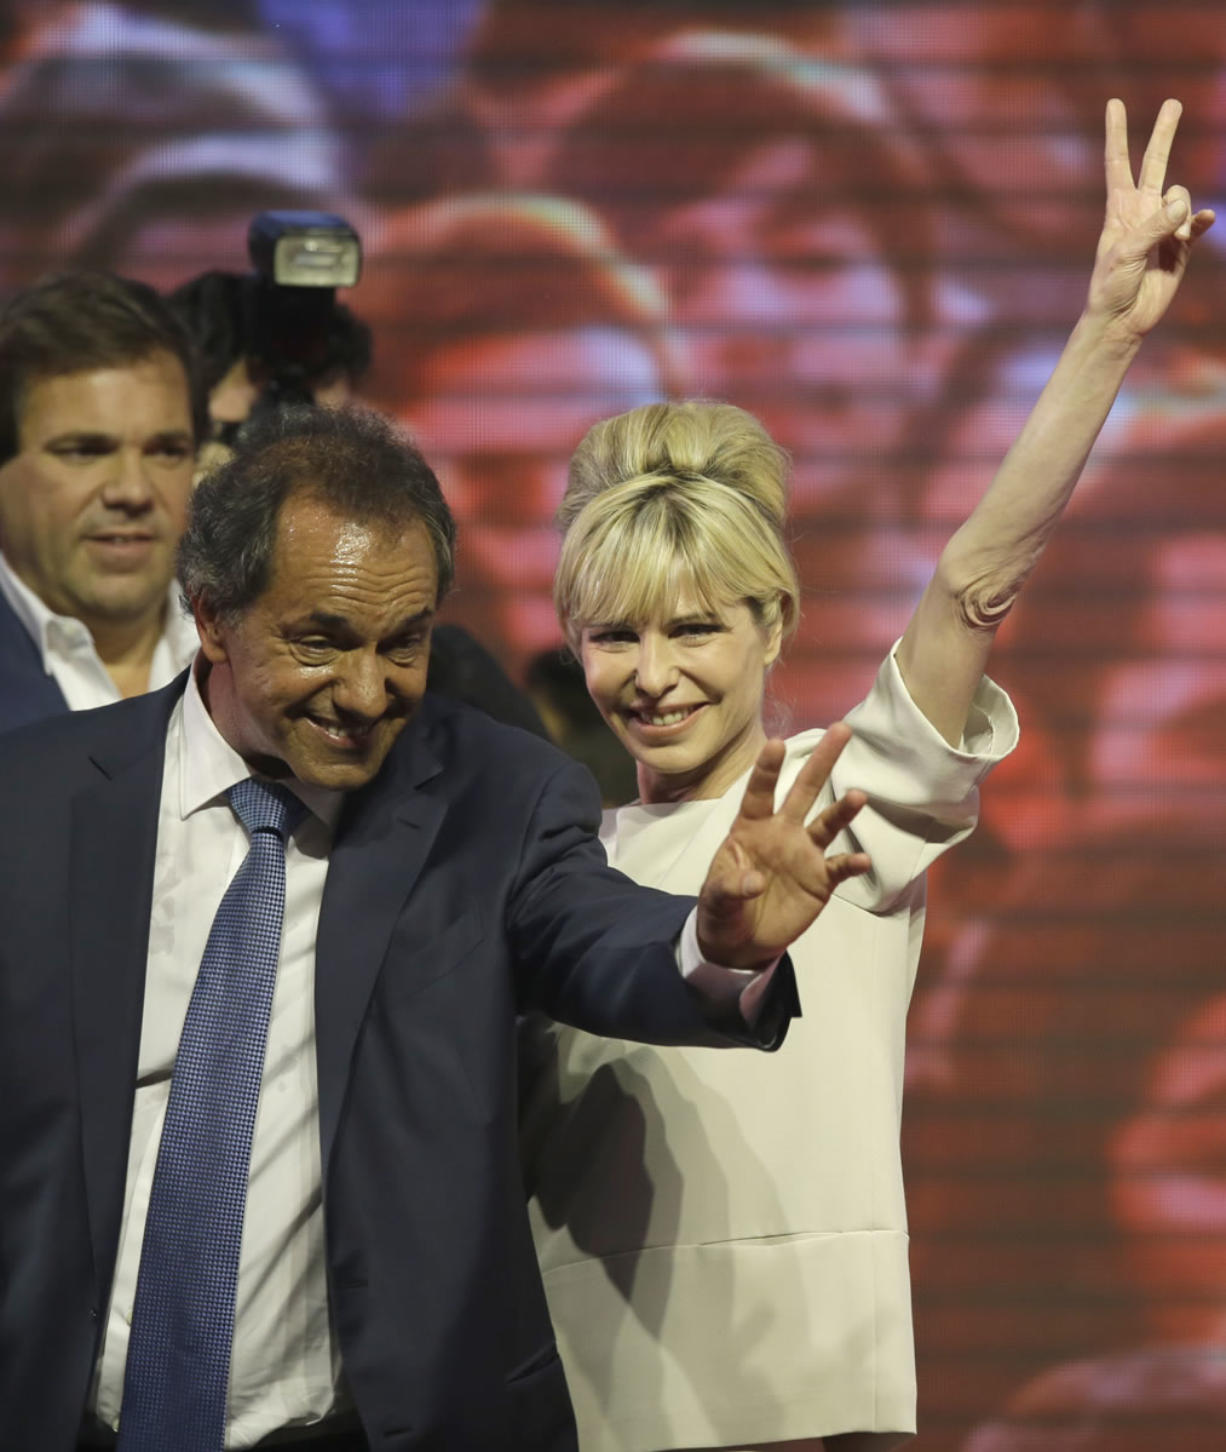 Accompanied by his wife, Karina Rabolini, Buenos Aires' Governor and ruling party presidential candidate Daniel Scioli, left, greets supporters Sunday at Luna Park in Buenos Aires, Argentina.